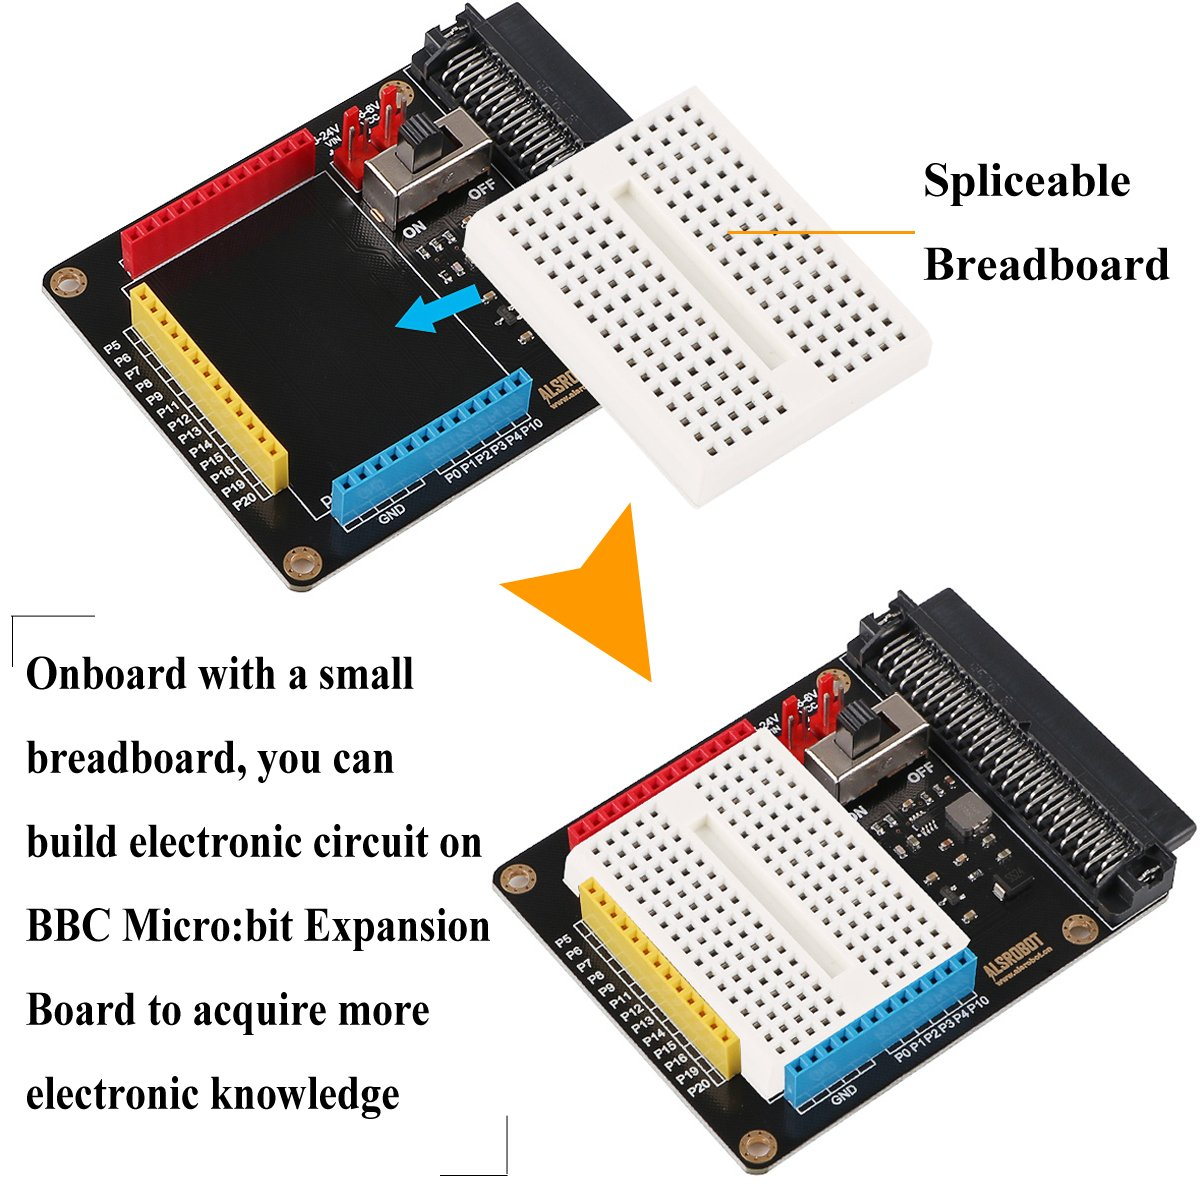 Makerhawk Bbc Microbit Expansion Board With Spliceable Breadboard Build Electronic Circuits Convenient To Lead All The Micro Bit Interface For Python Graphical Programming And Diy Iot Computers Accessories